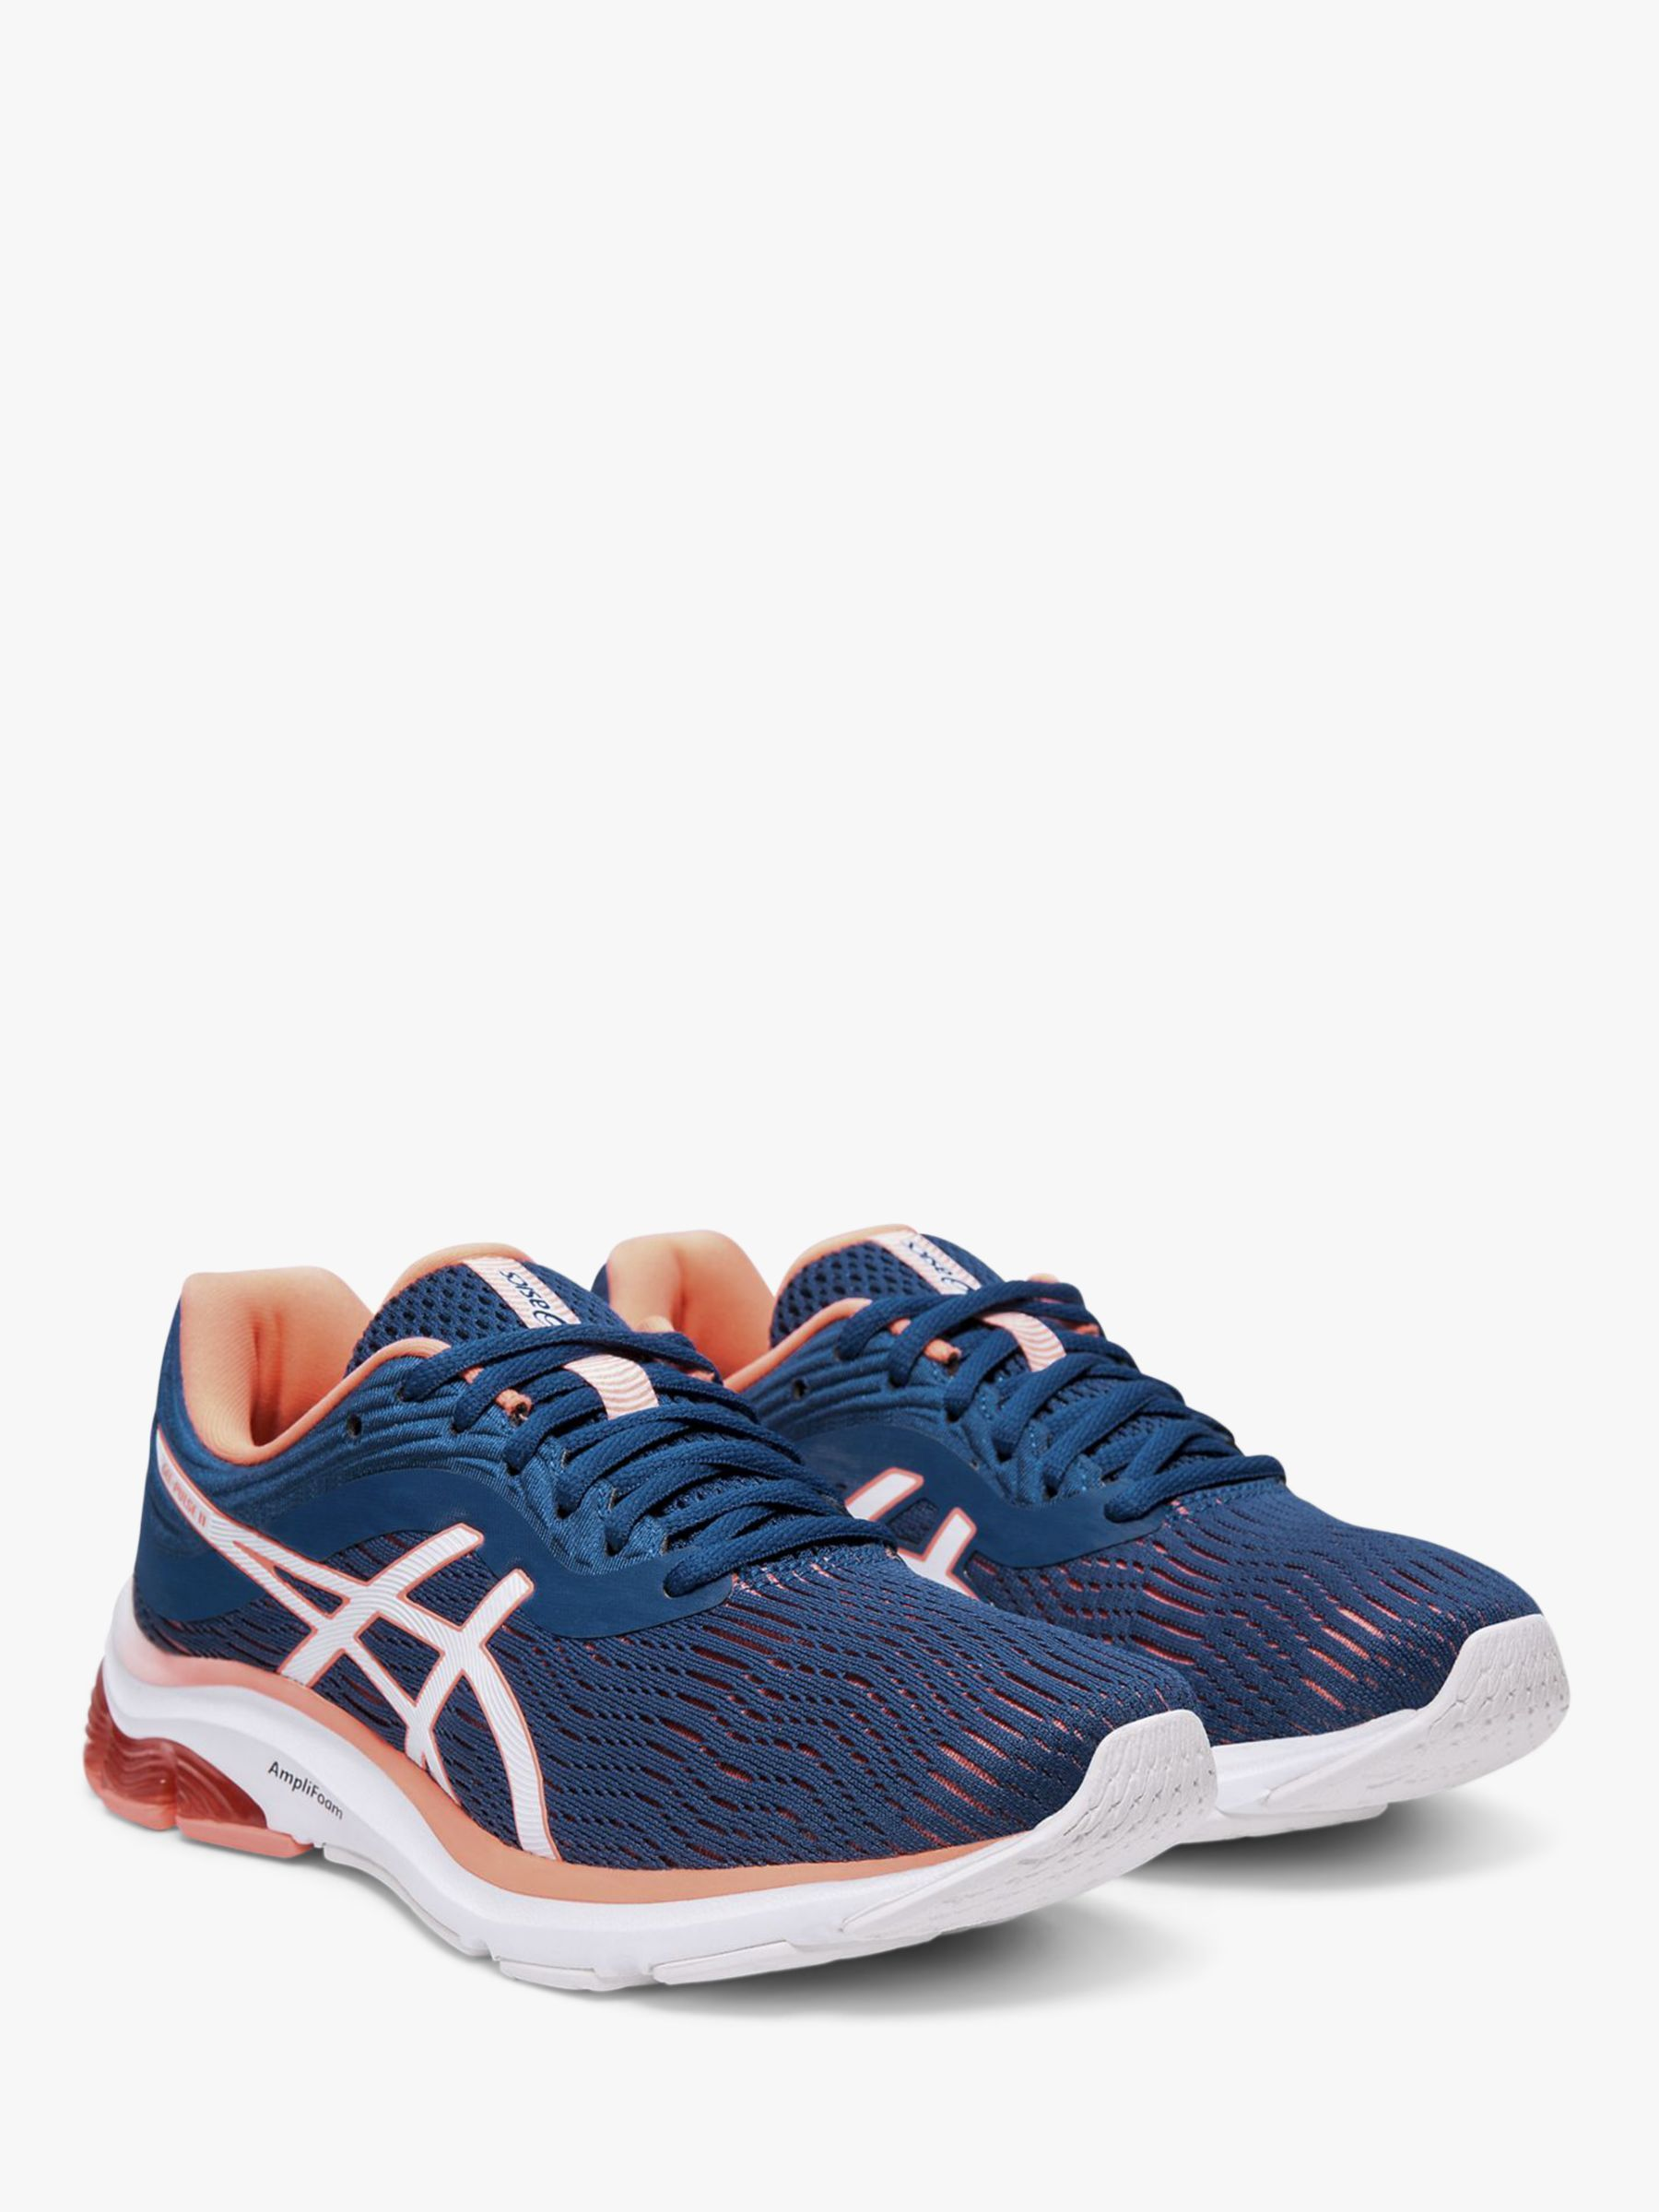 ASICS GEL-PULSE 11 Women's Running Shoes | Asics gel pulse ...